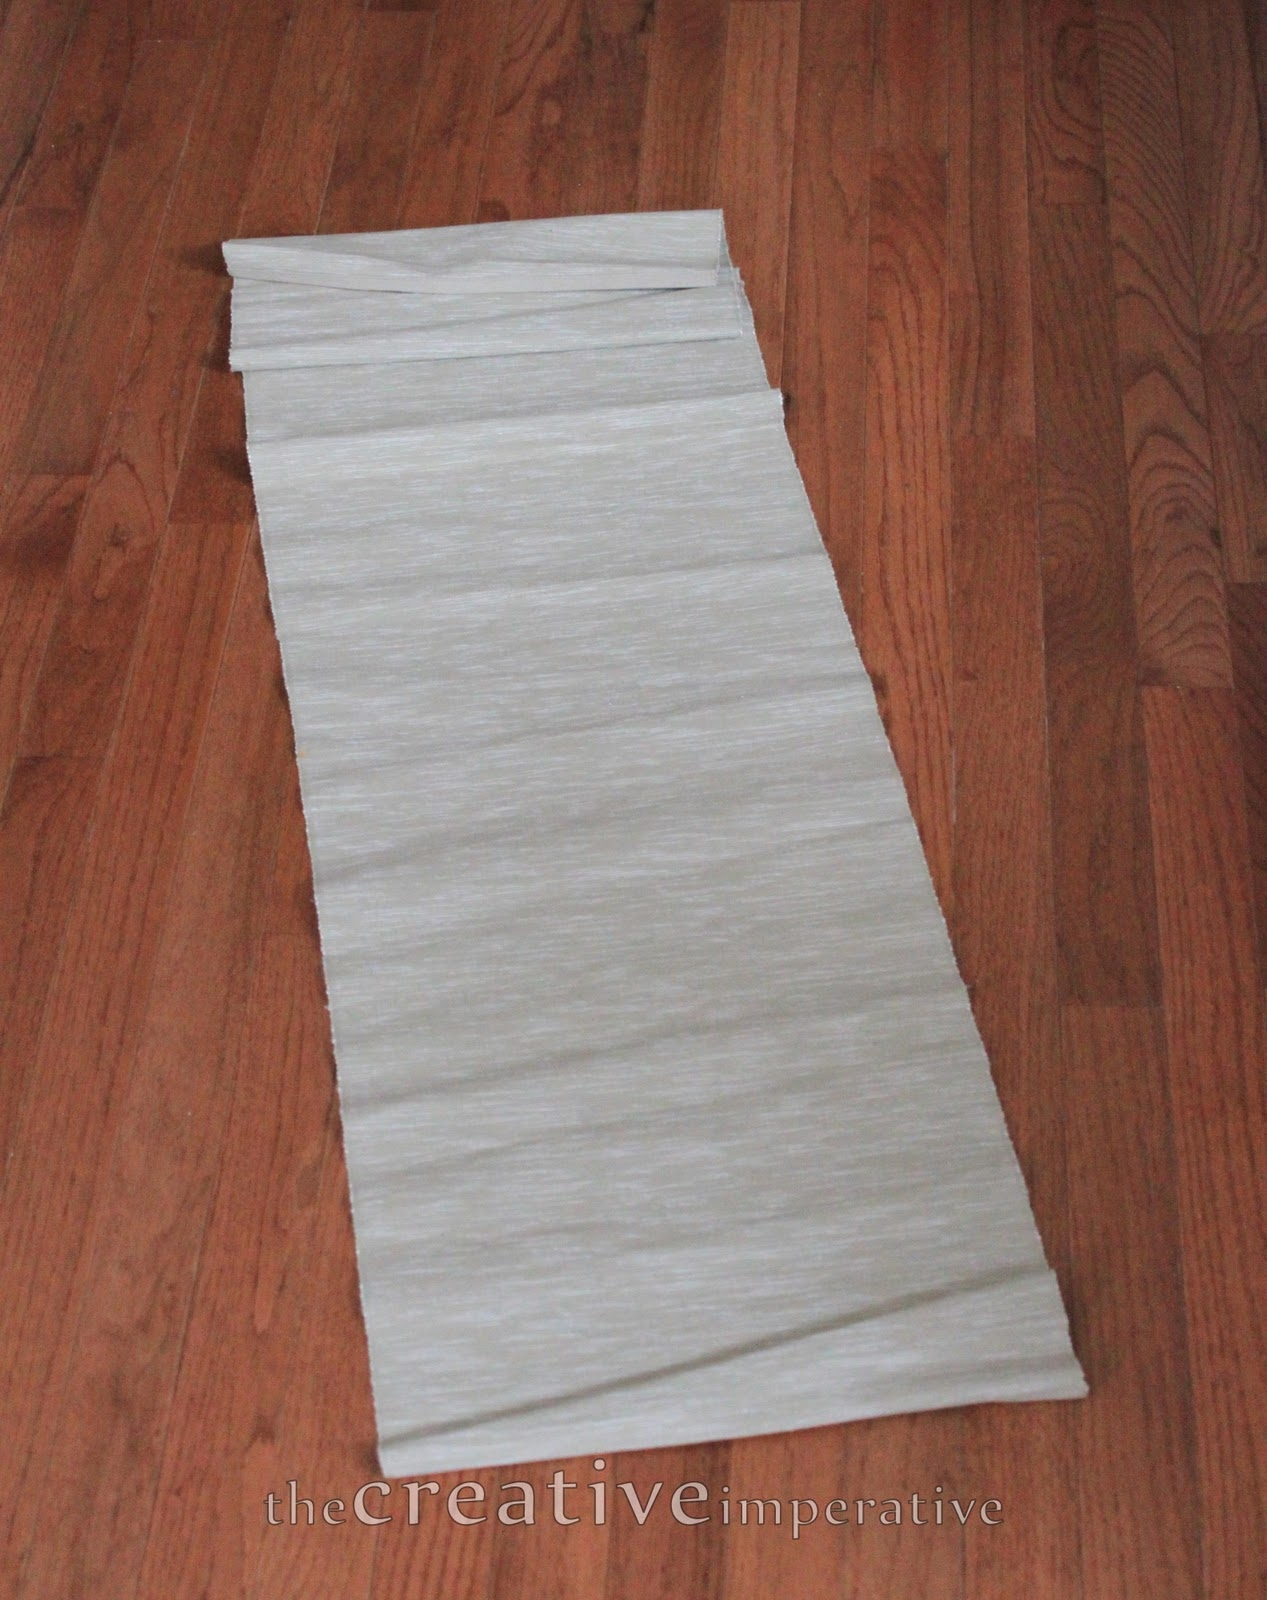 The Creative Imperative Sew Ikea Runners Into A Rug For Only 35 Regarding Hallway Runners Ikea (#19 of 20)